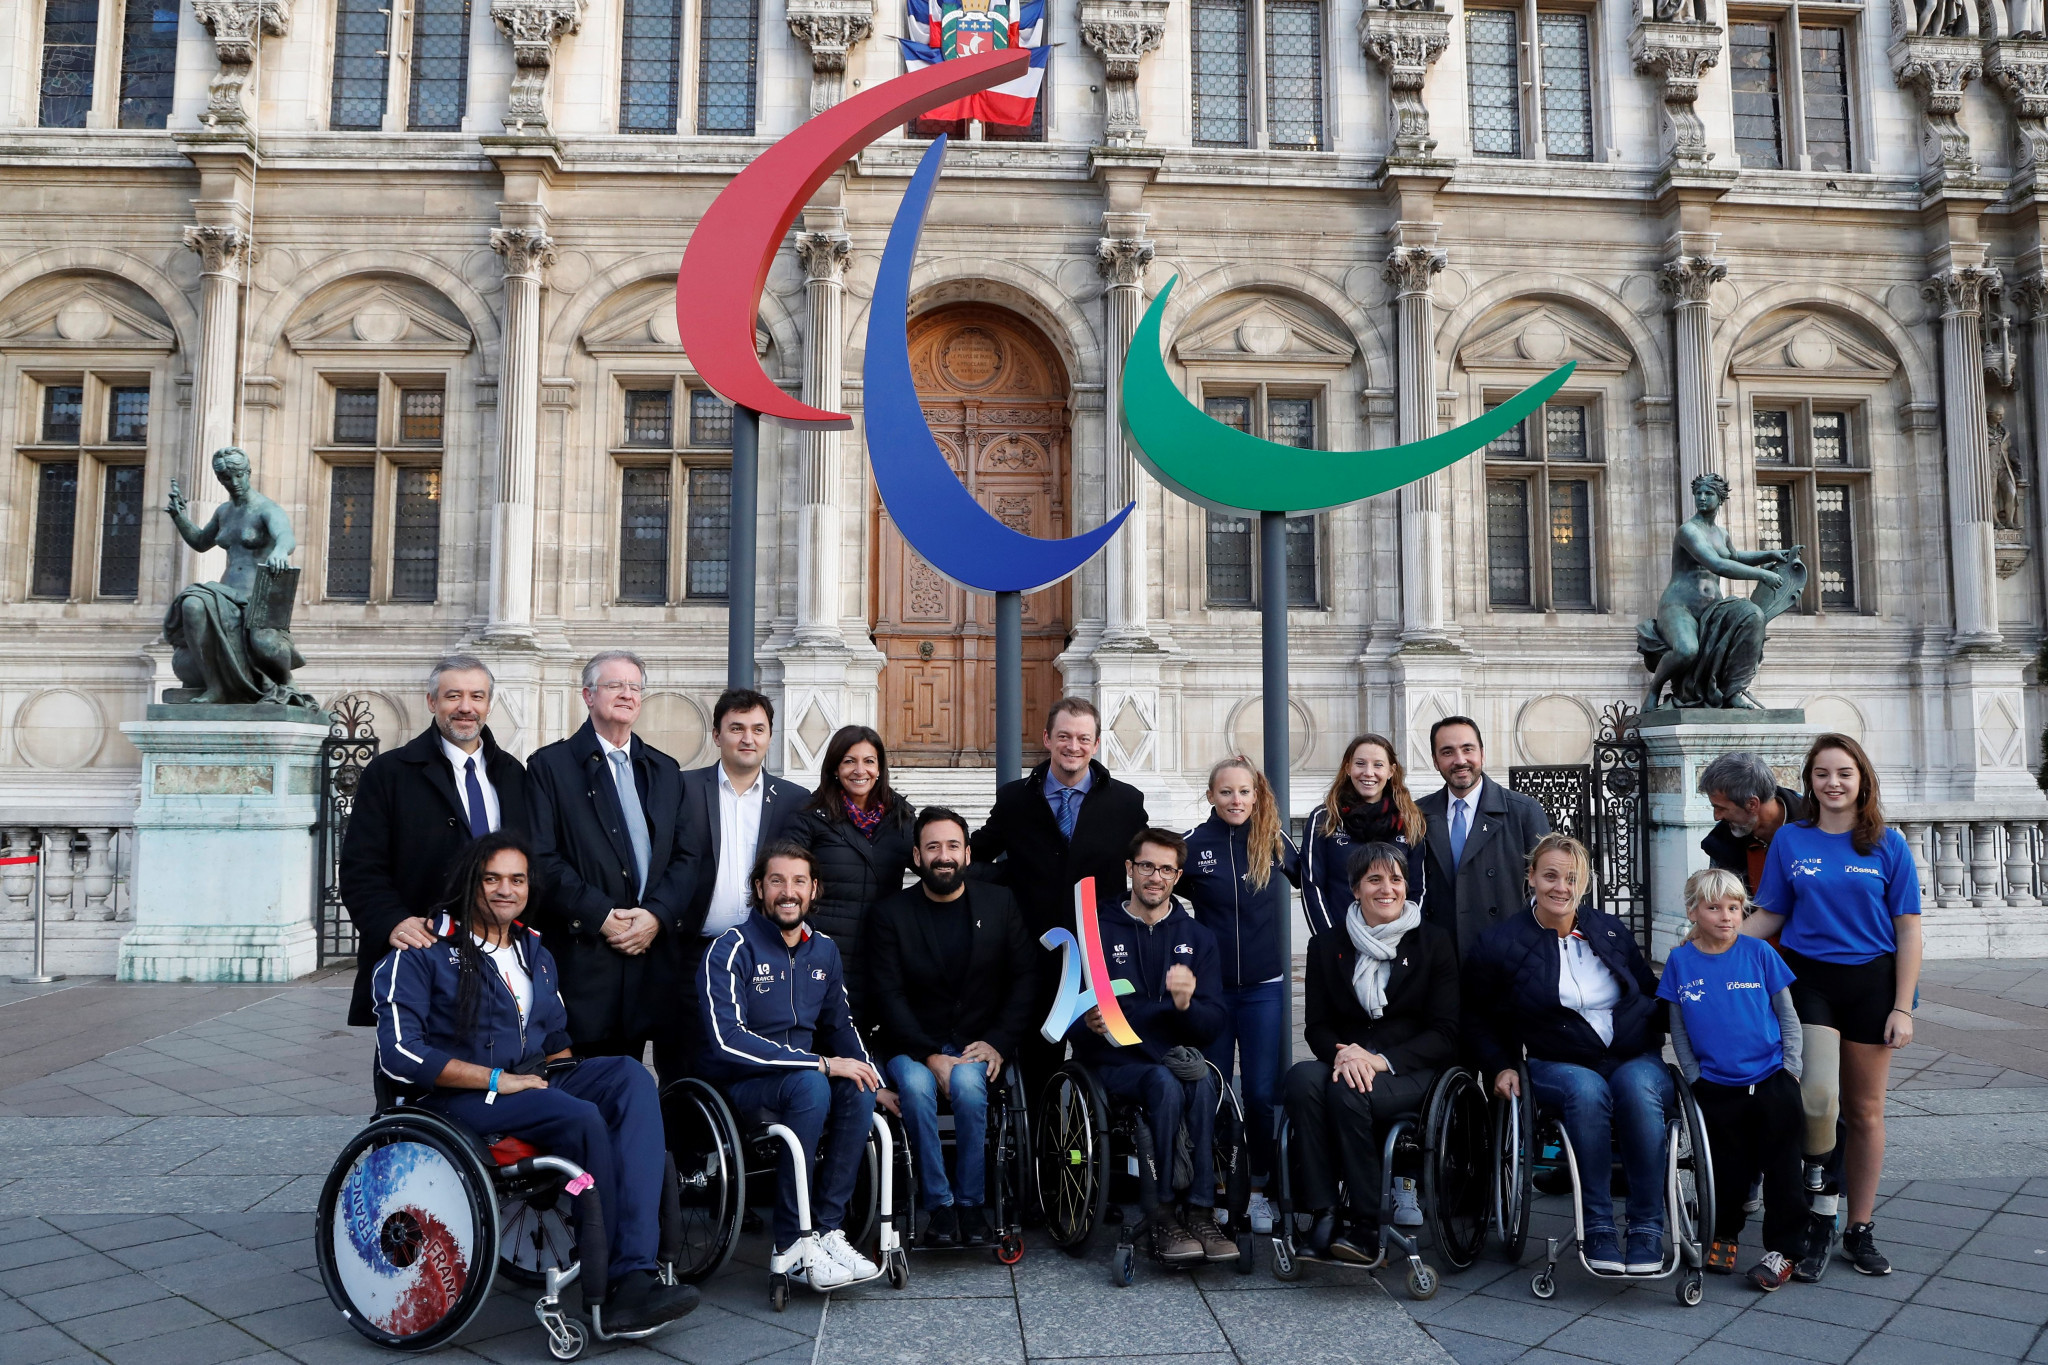 IPC to announce sports and disciplines through to next stage of Paris 2024 process